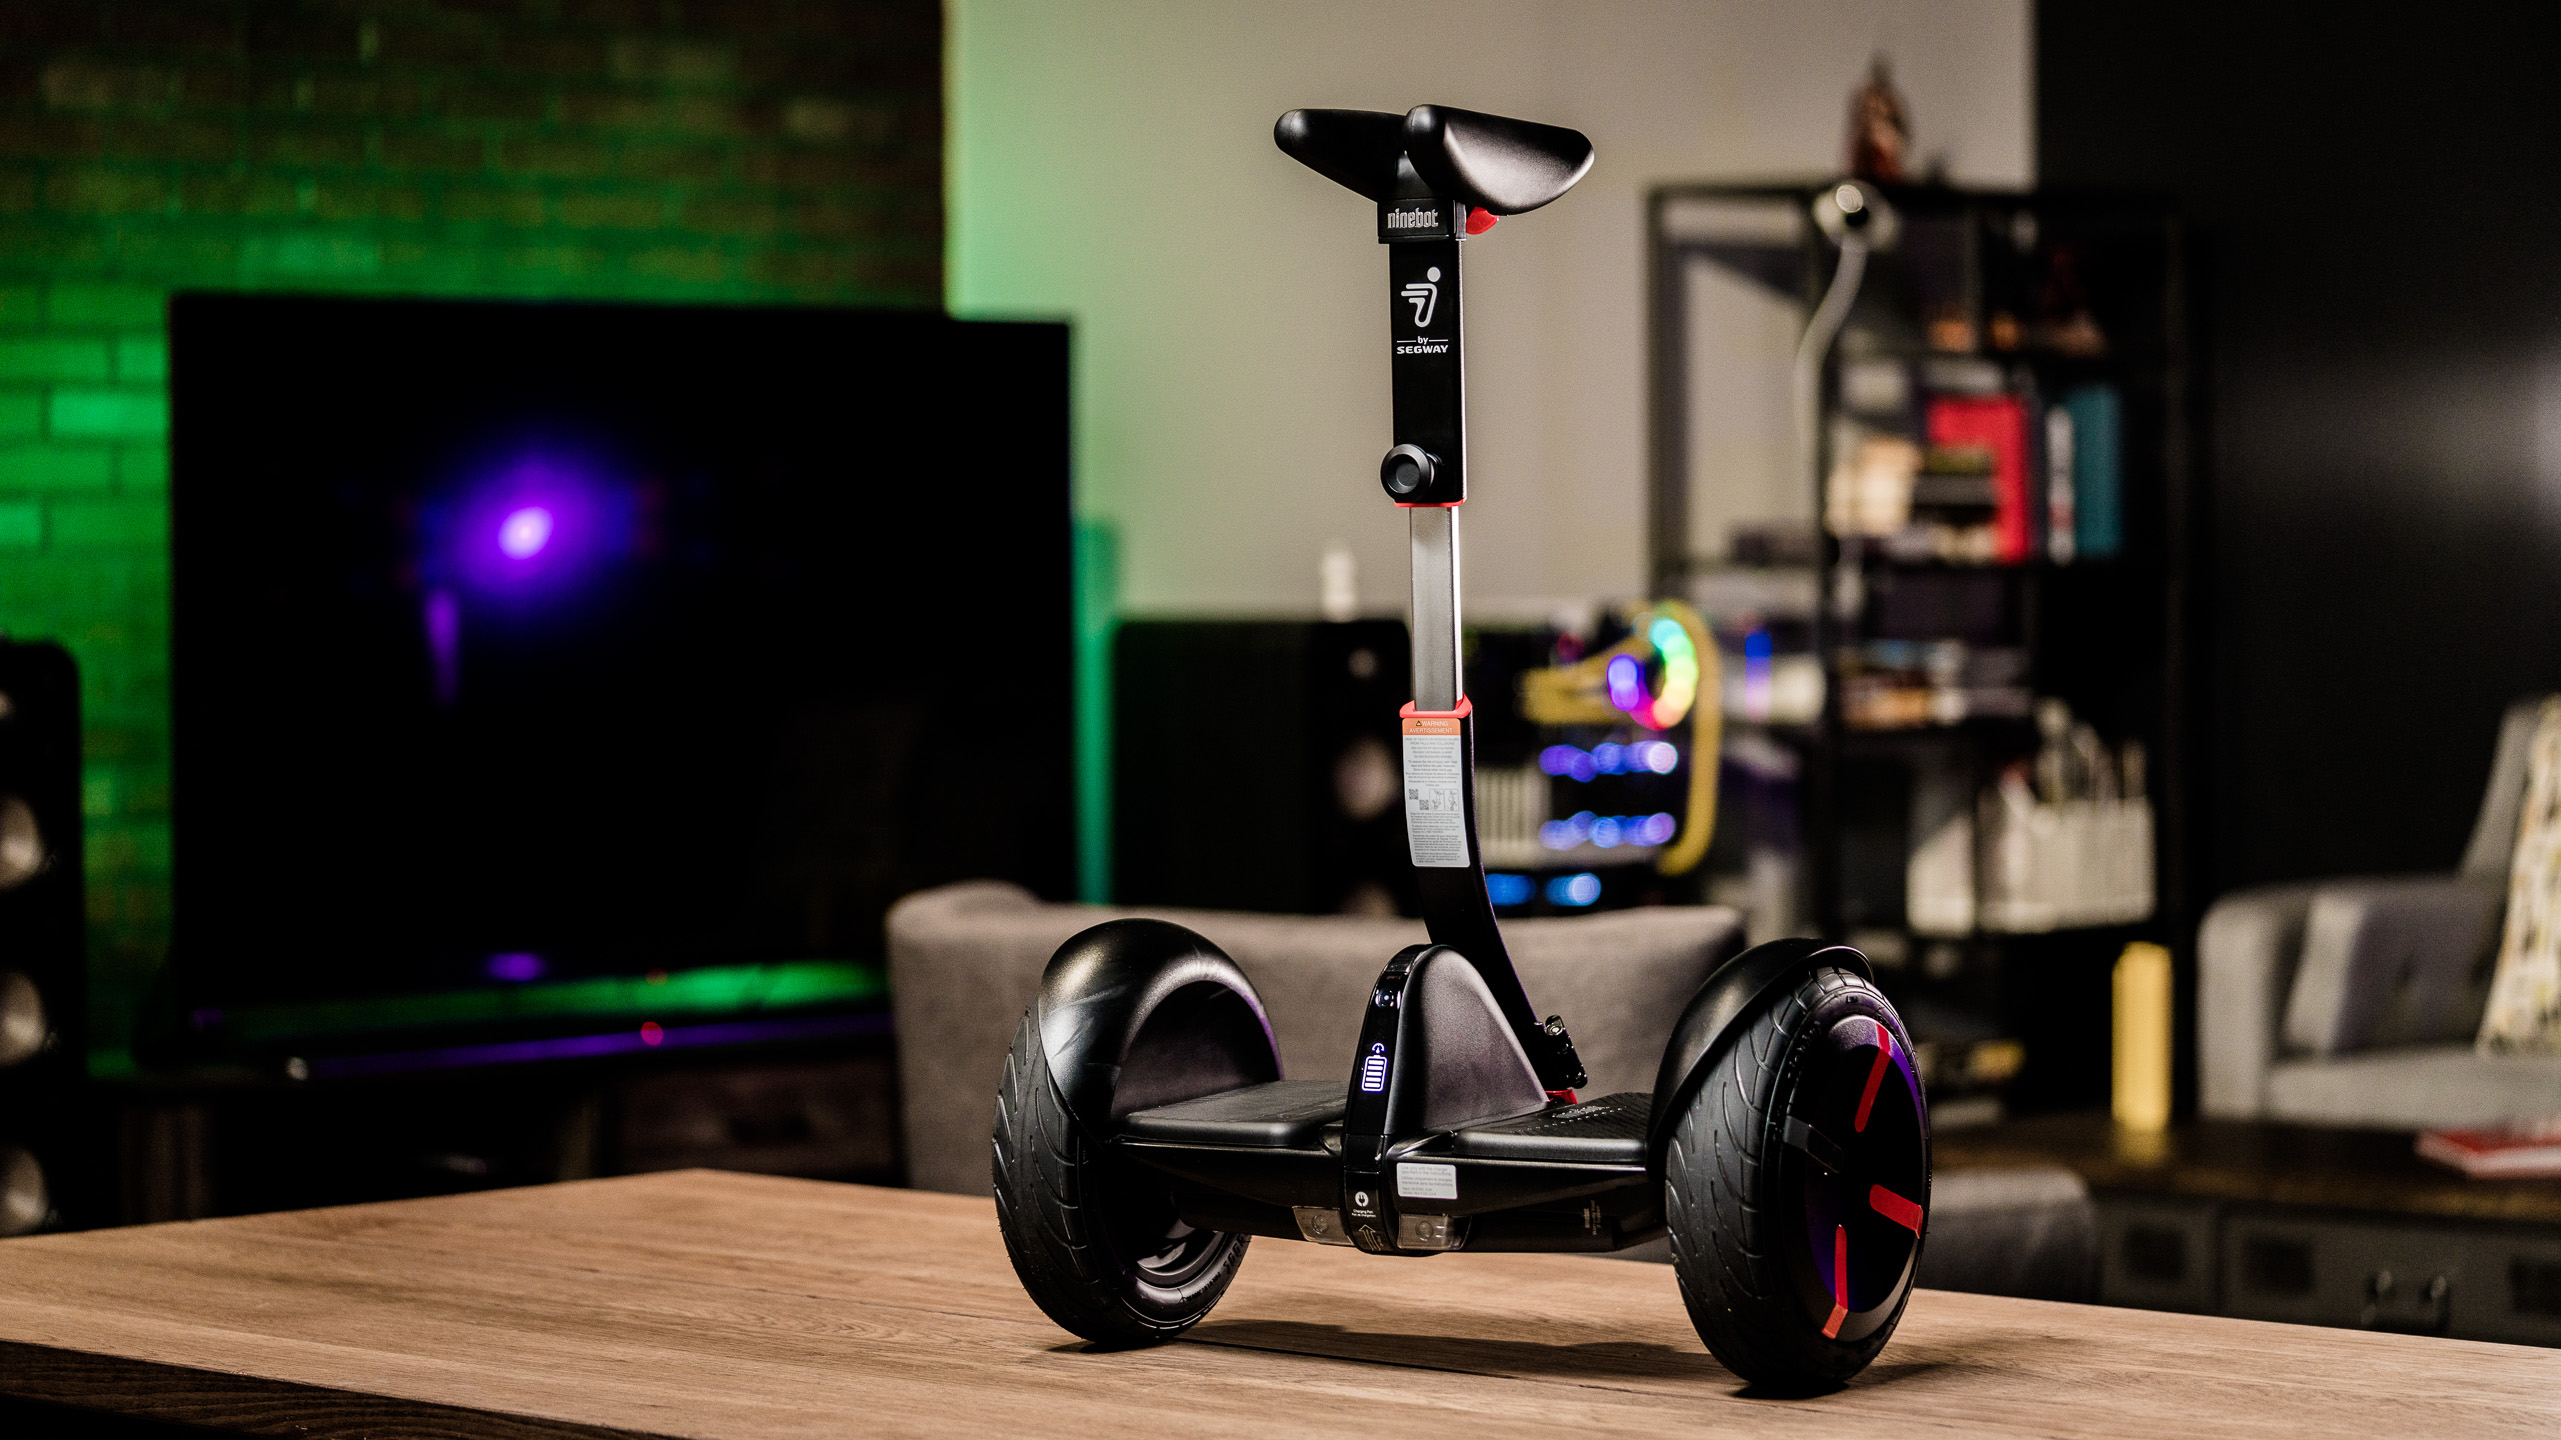 Ninebot by Segway's miniPRO electric personal transportation is compact, quick to charge, and speedy.